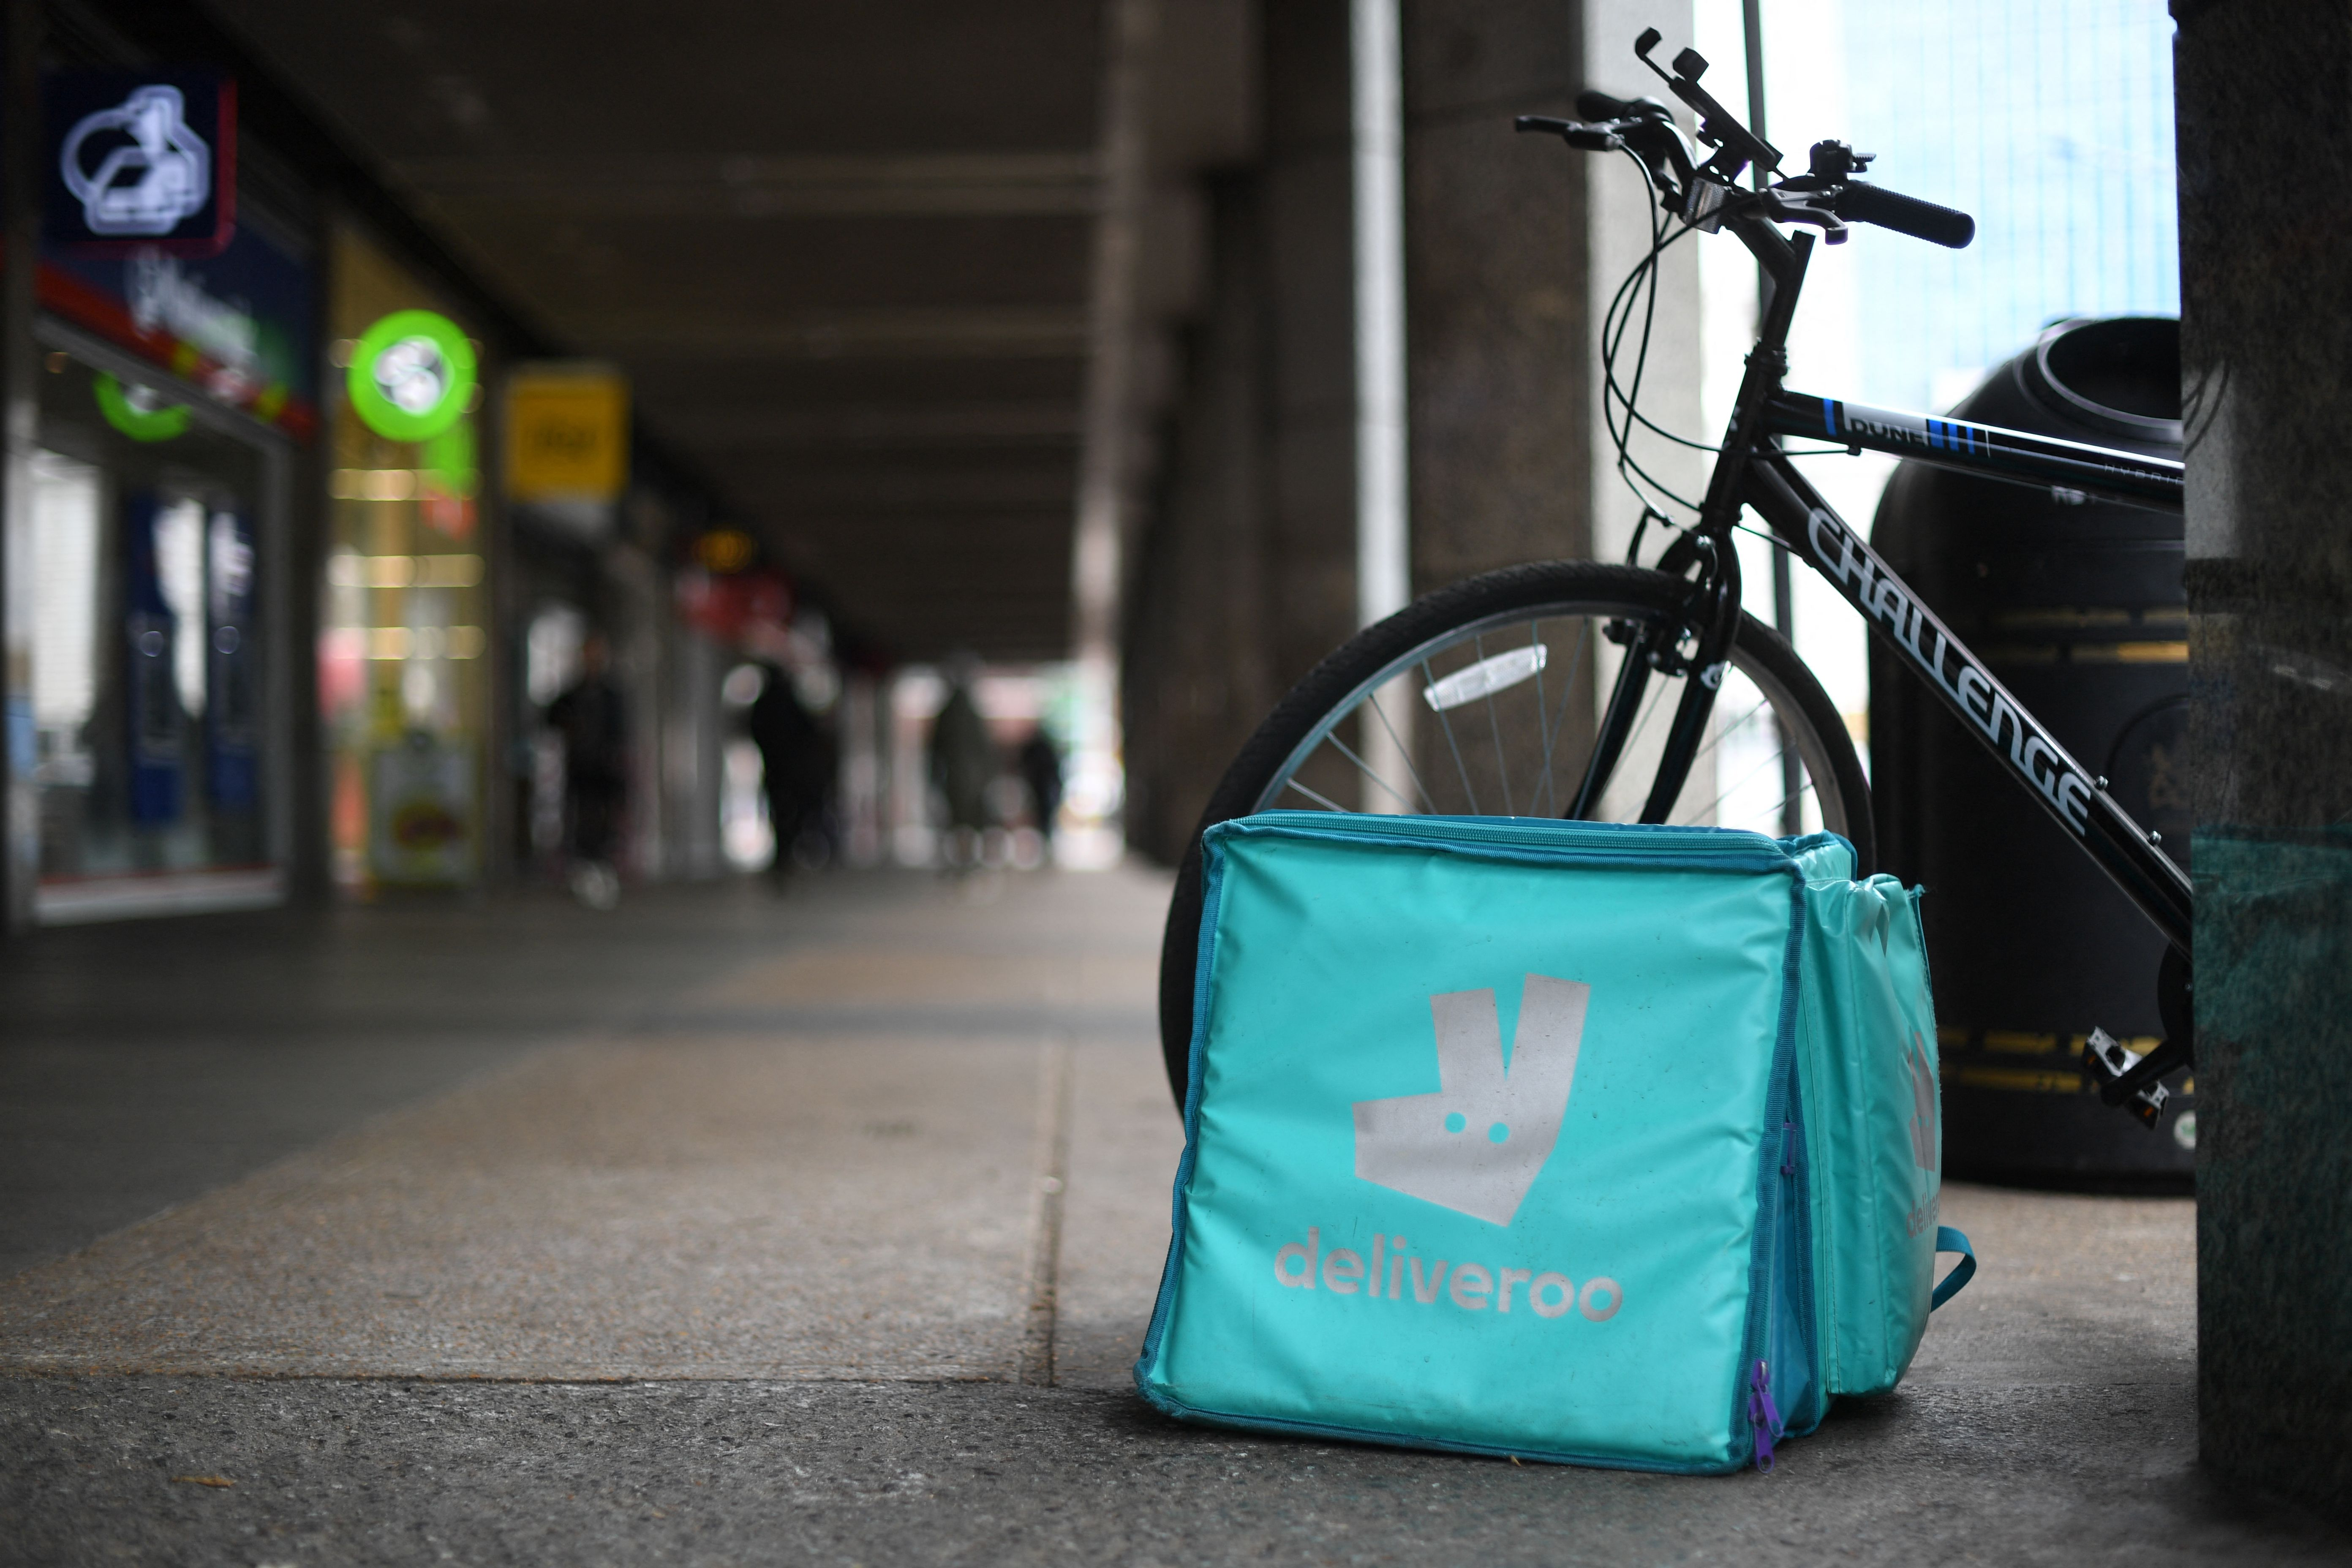 A cerulean Deliveroo food delivery bag sits next to a bike on a pavement in London